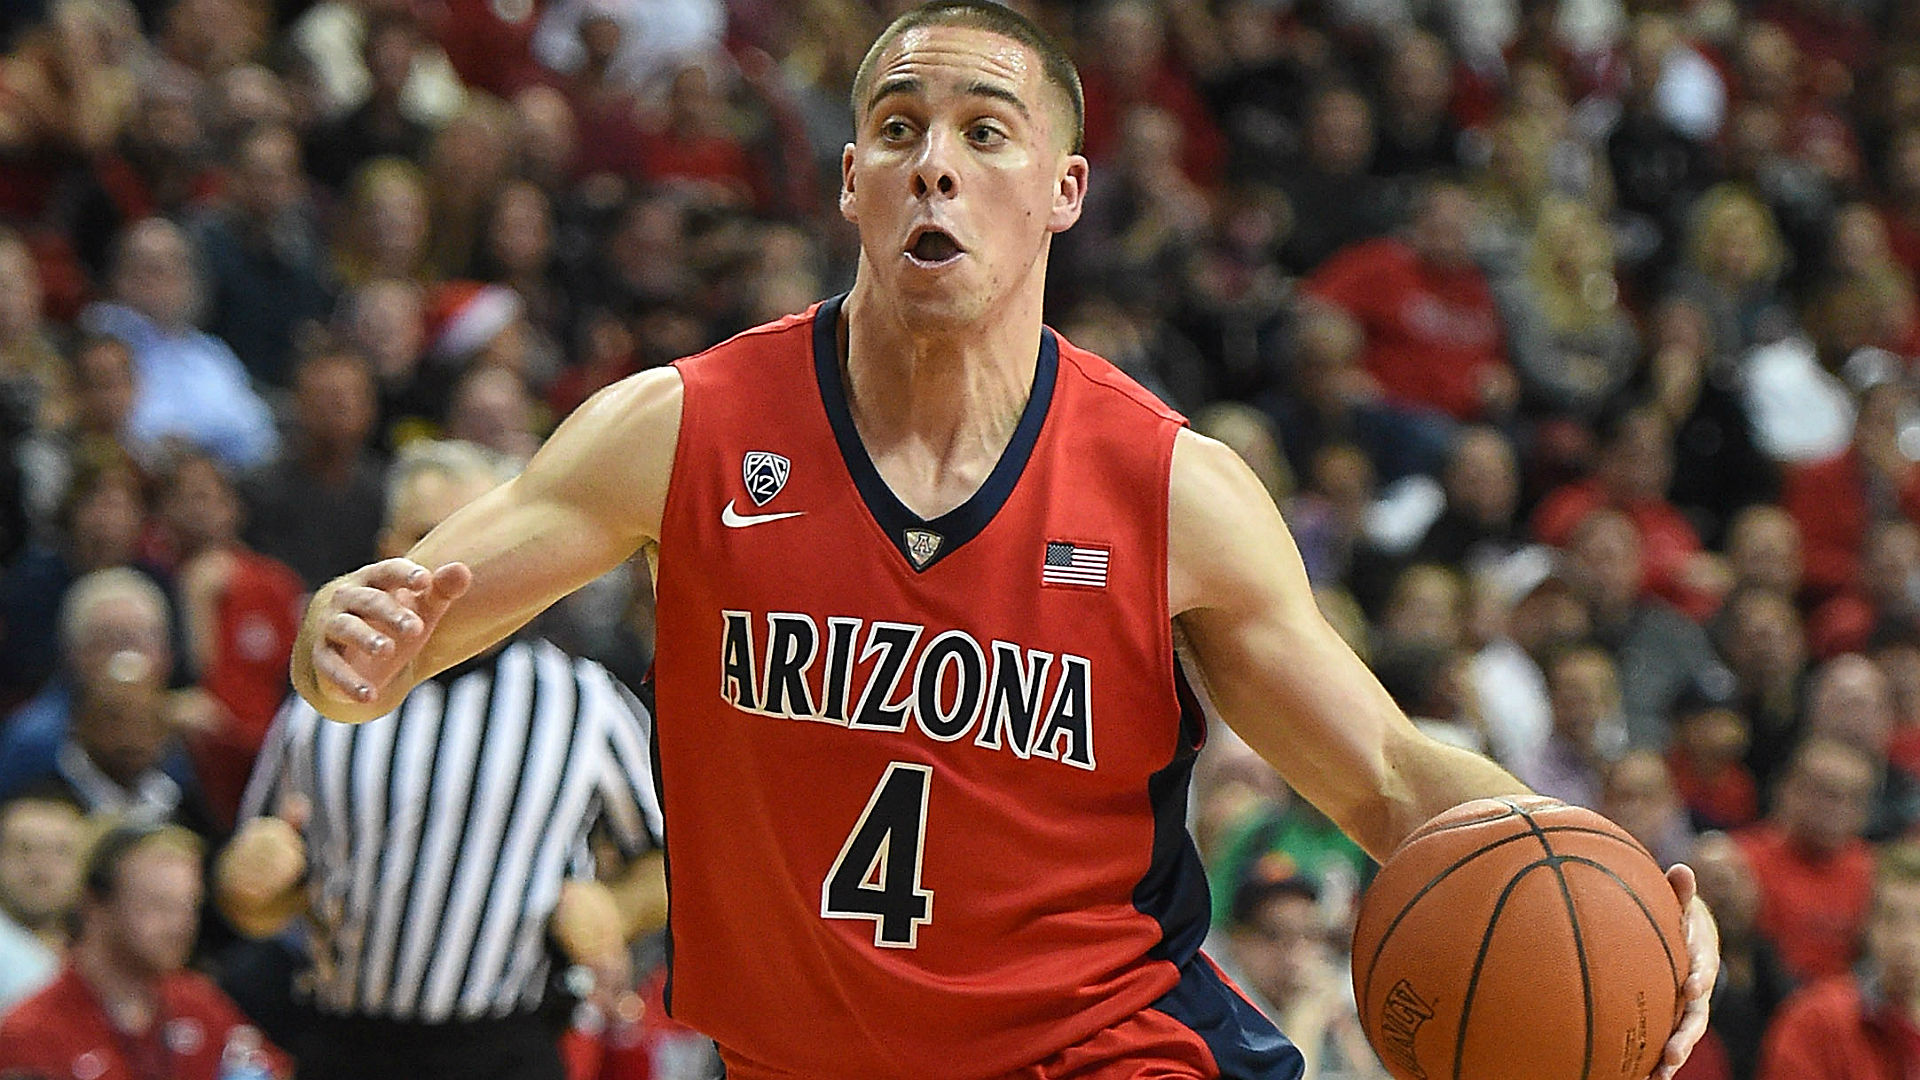 Thursday night's college hoops betting guide, A through Z